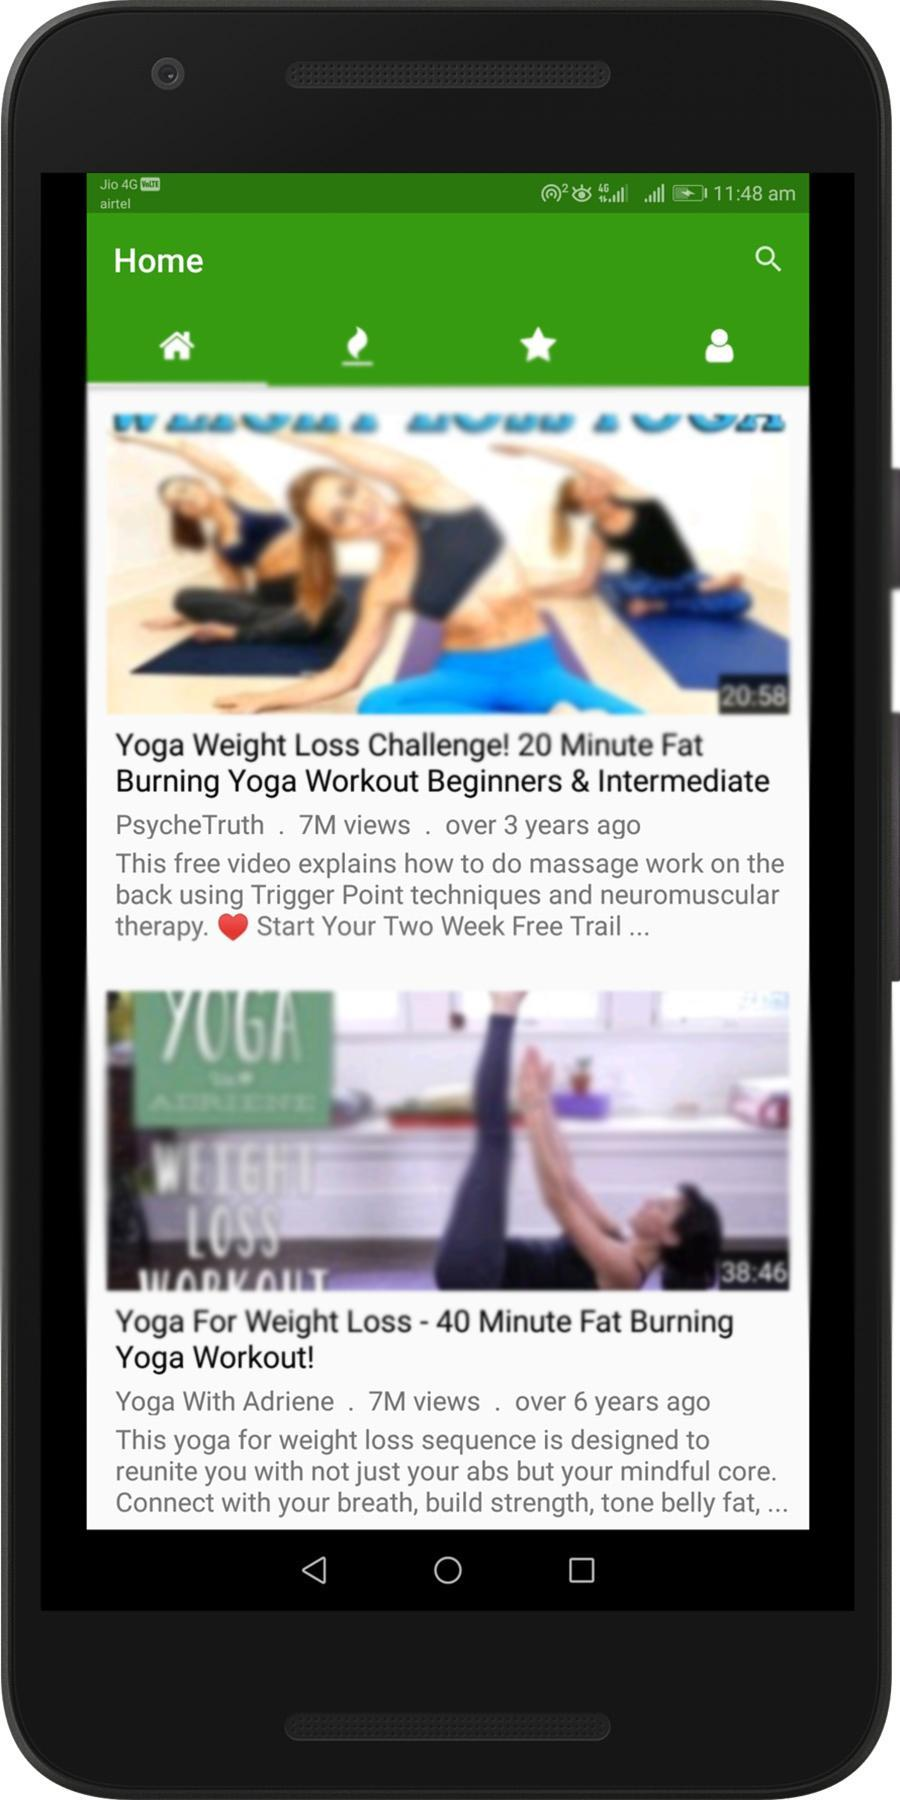 Yoga Workout Weight Loss Videos Easy Exercises For Android Apk Download